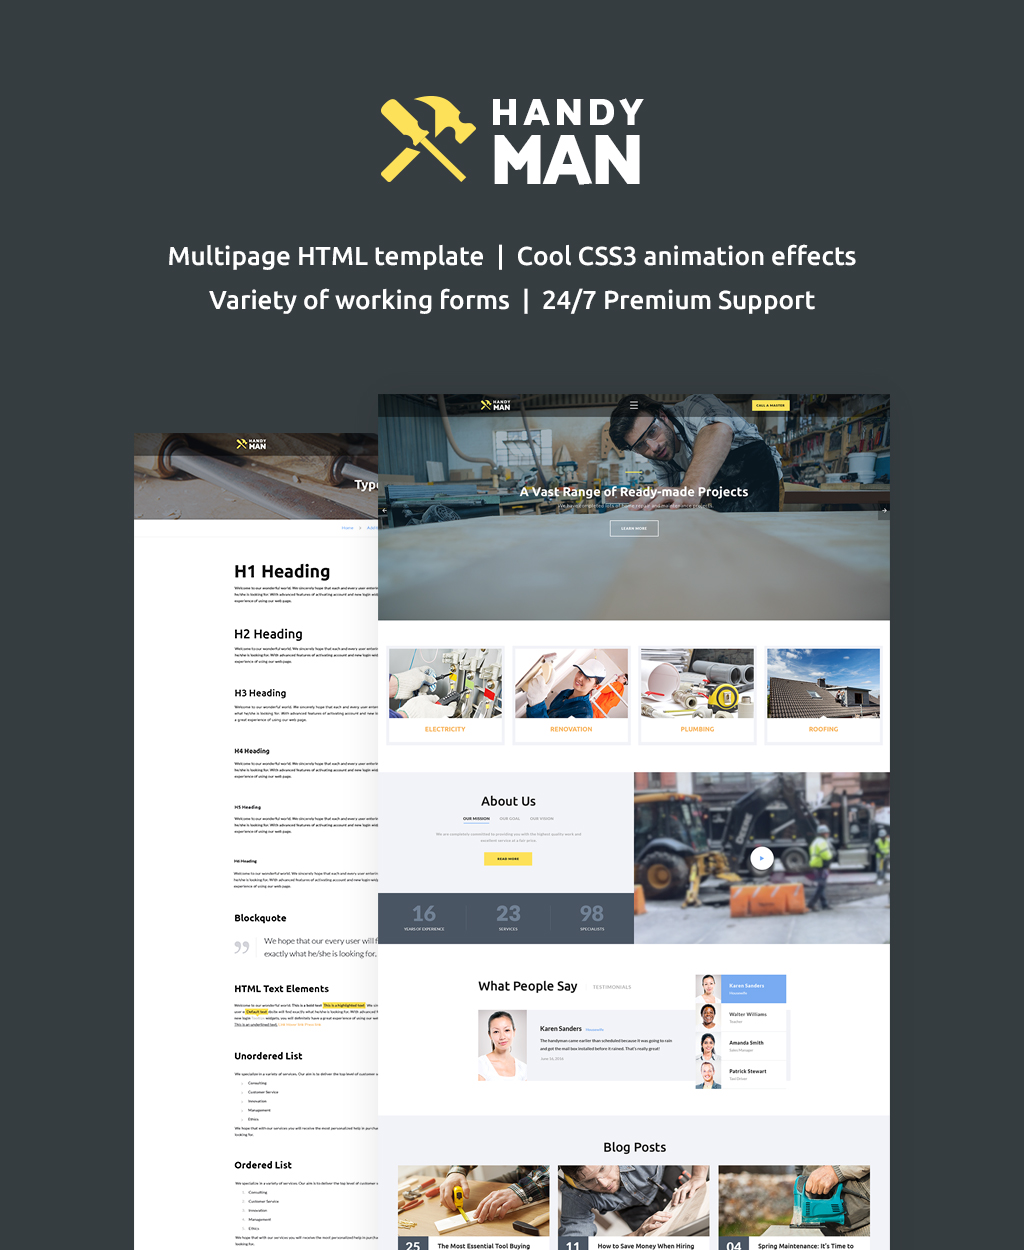 Handyman Multipage Website Template